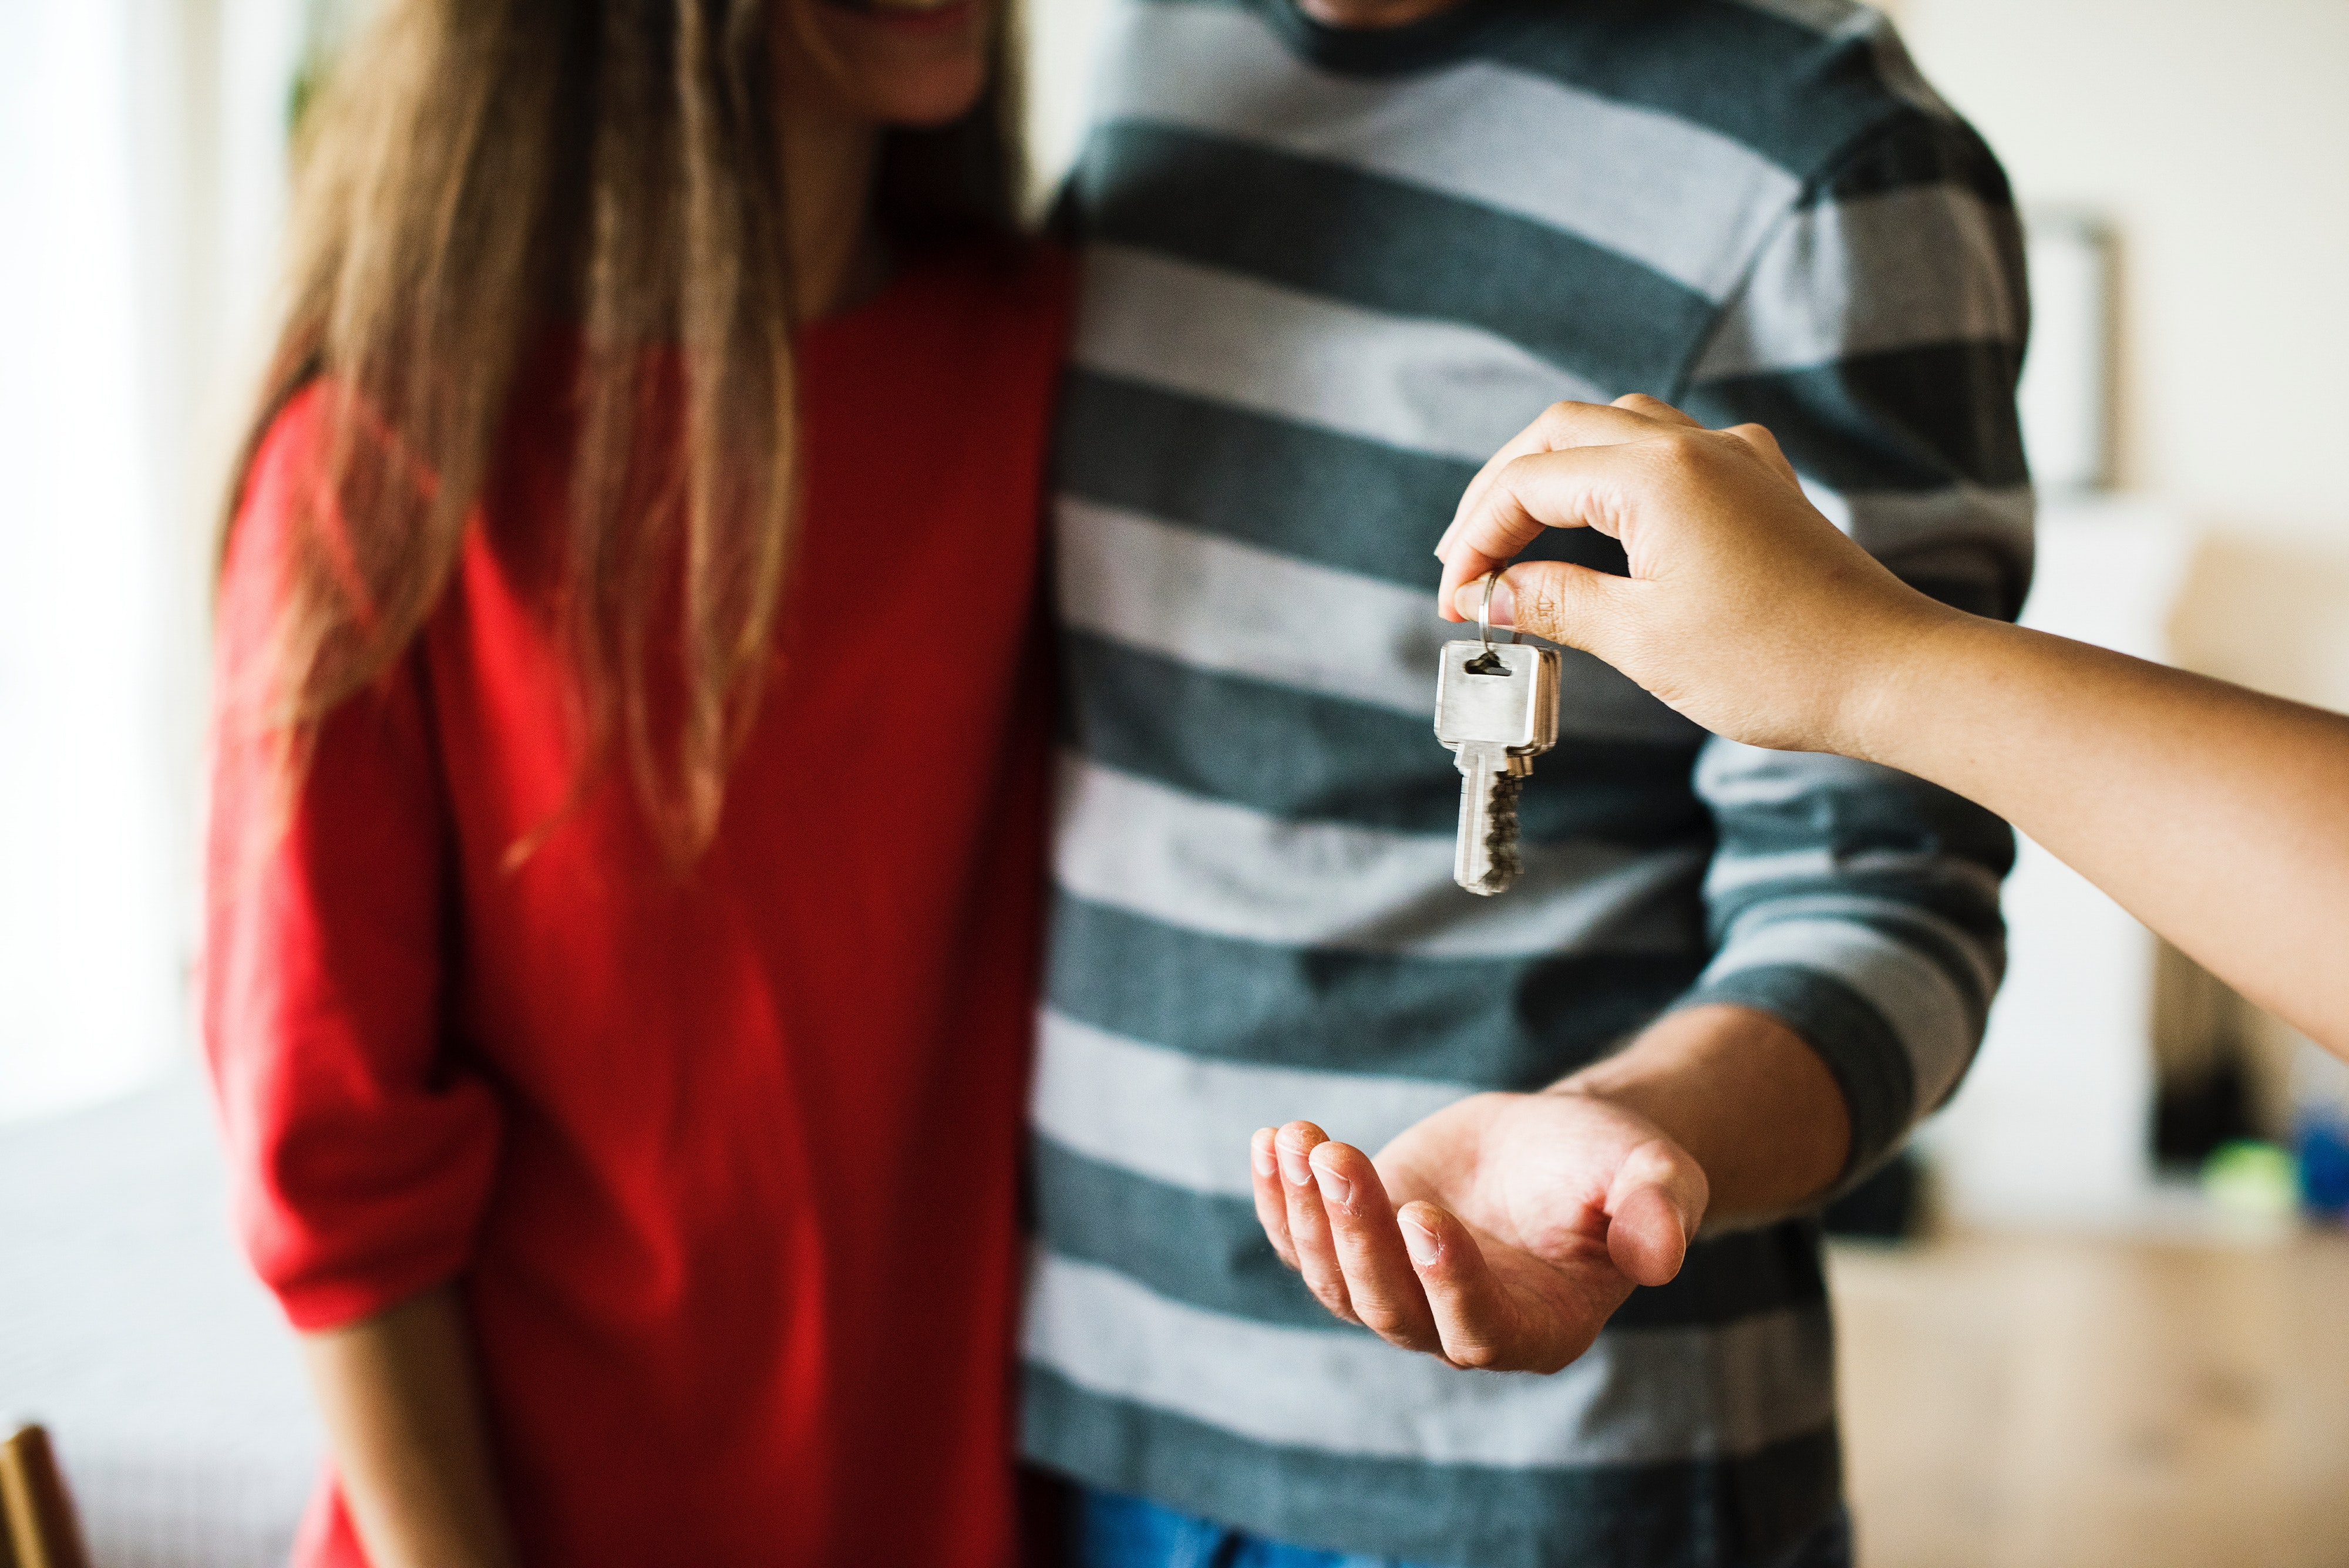 Things to Consider Before Renting Out Your Home